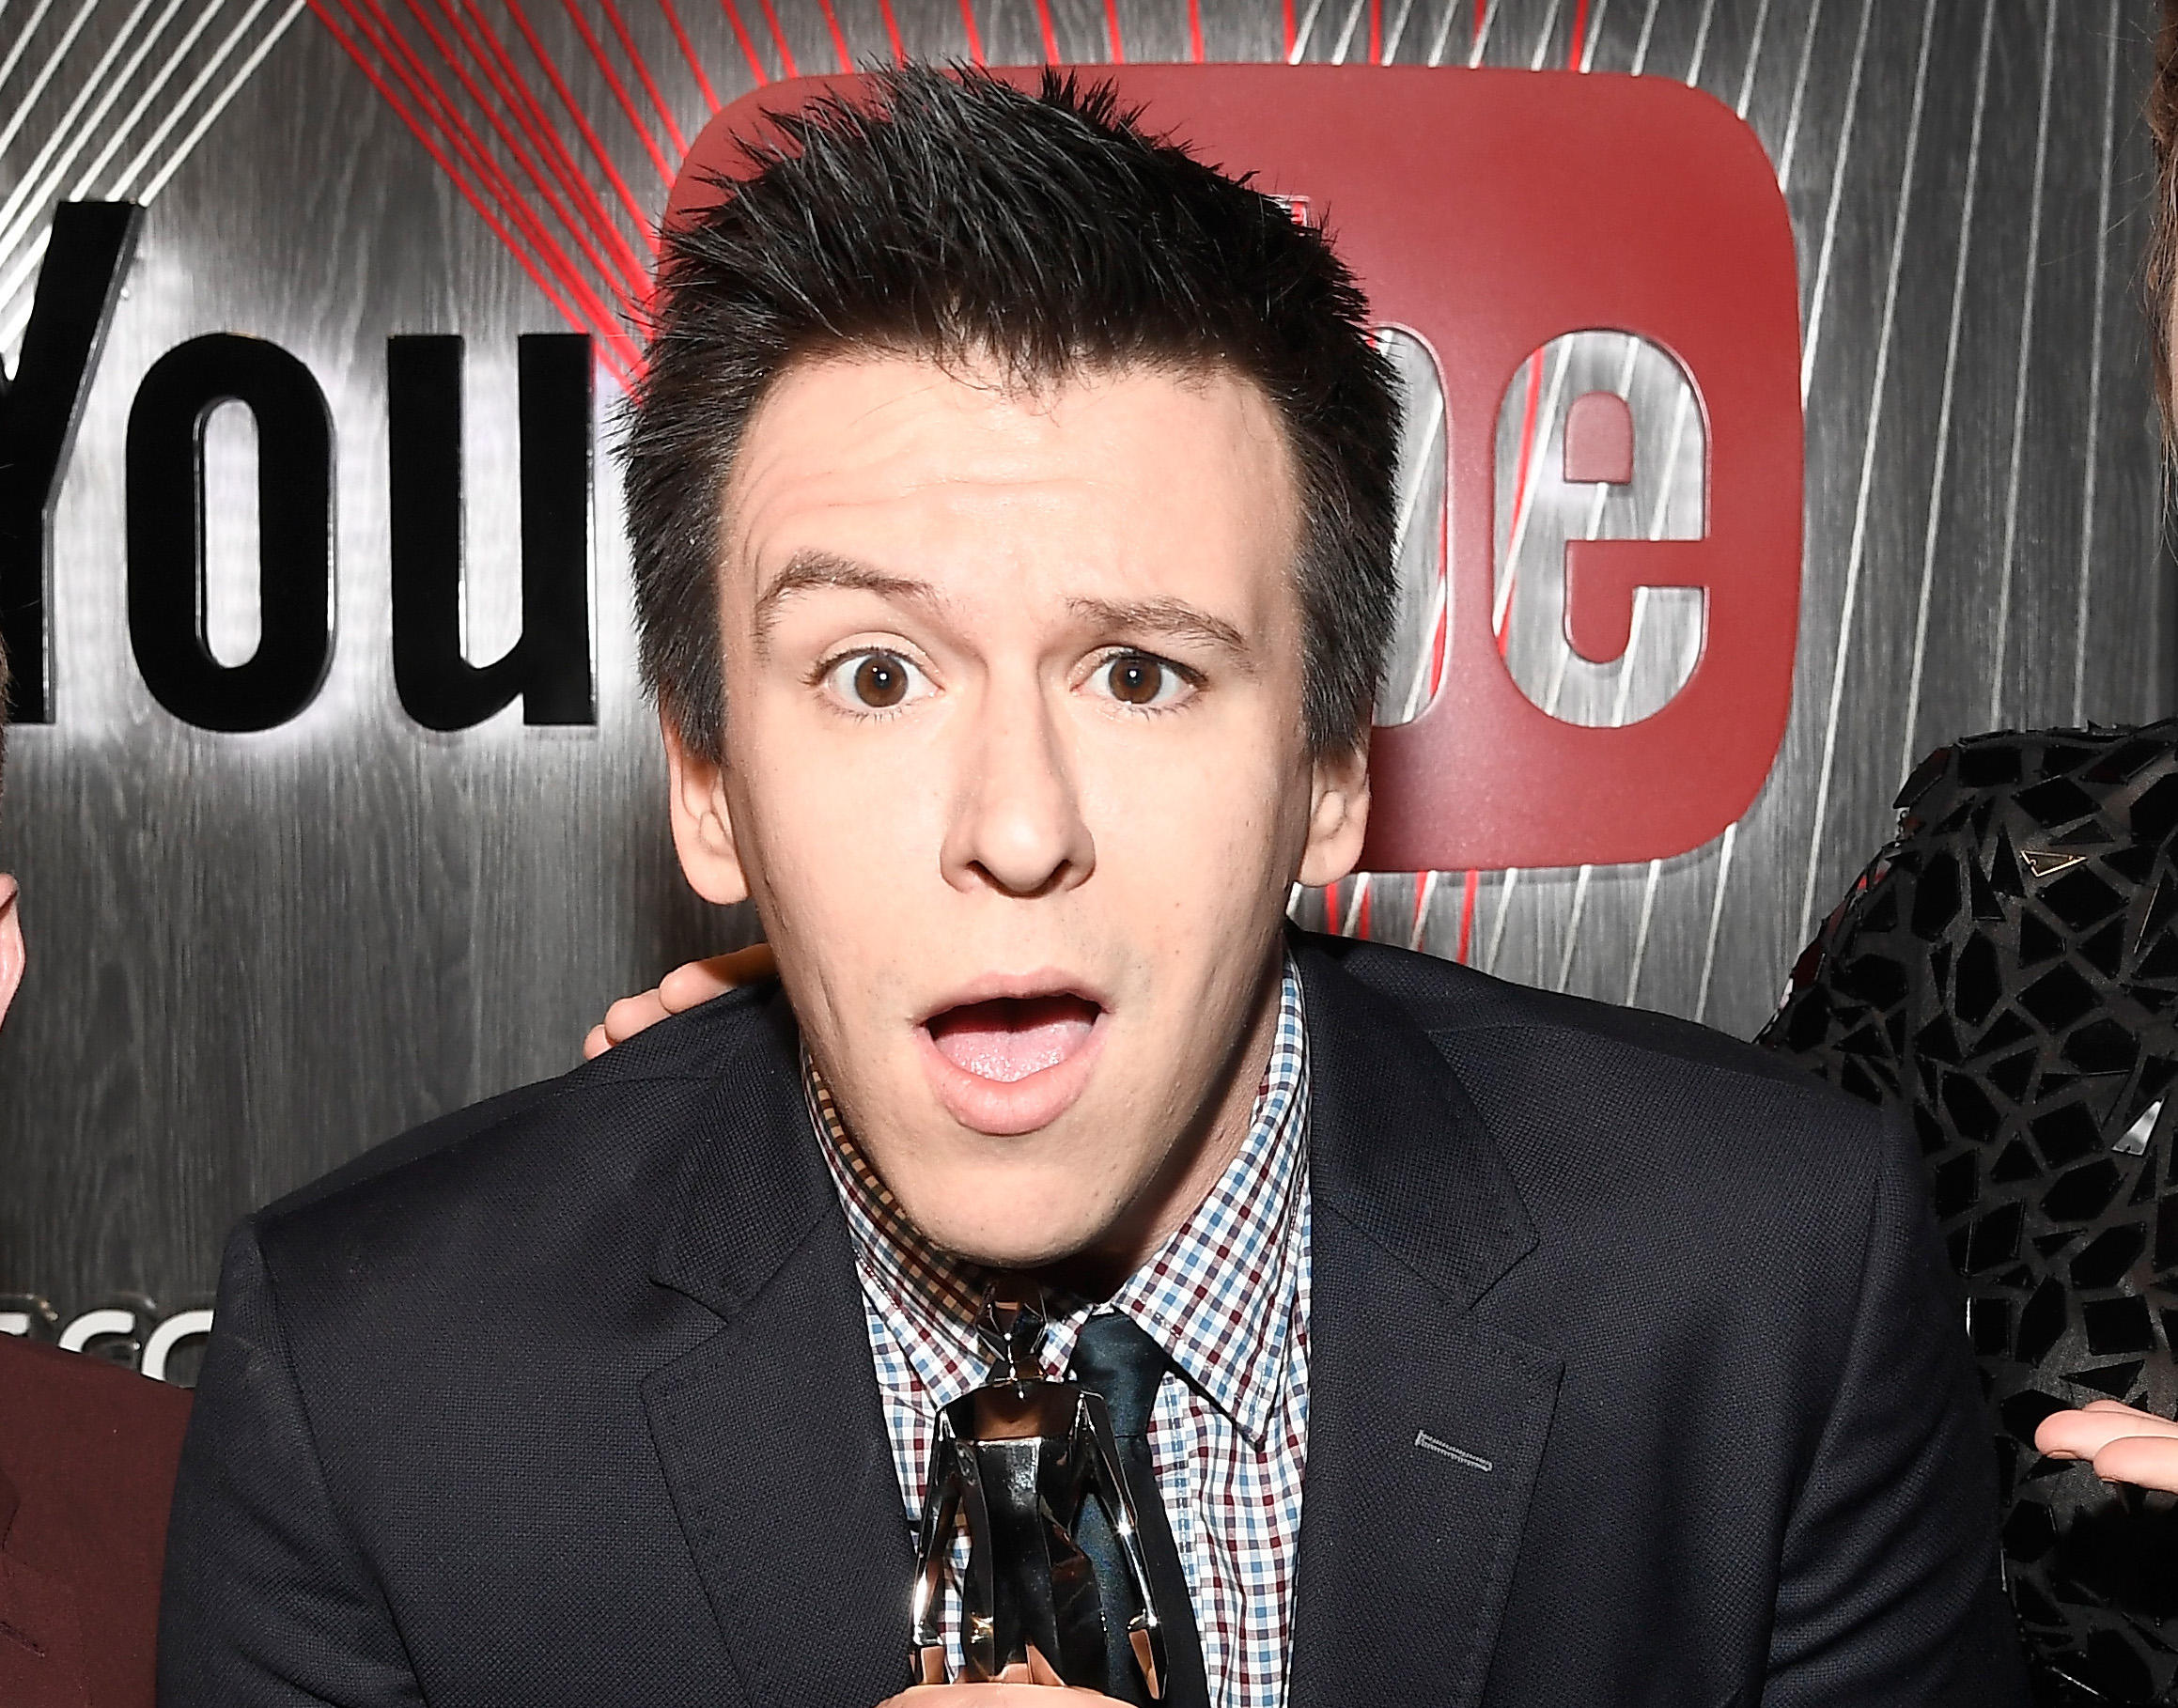 Phil DeFranco arches his eyebrow while looking surprised into the camera